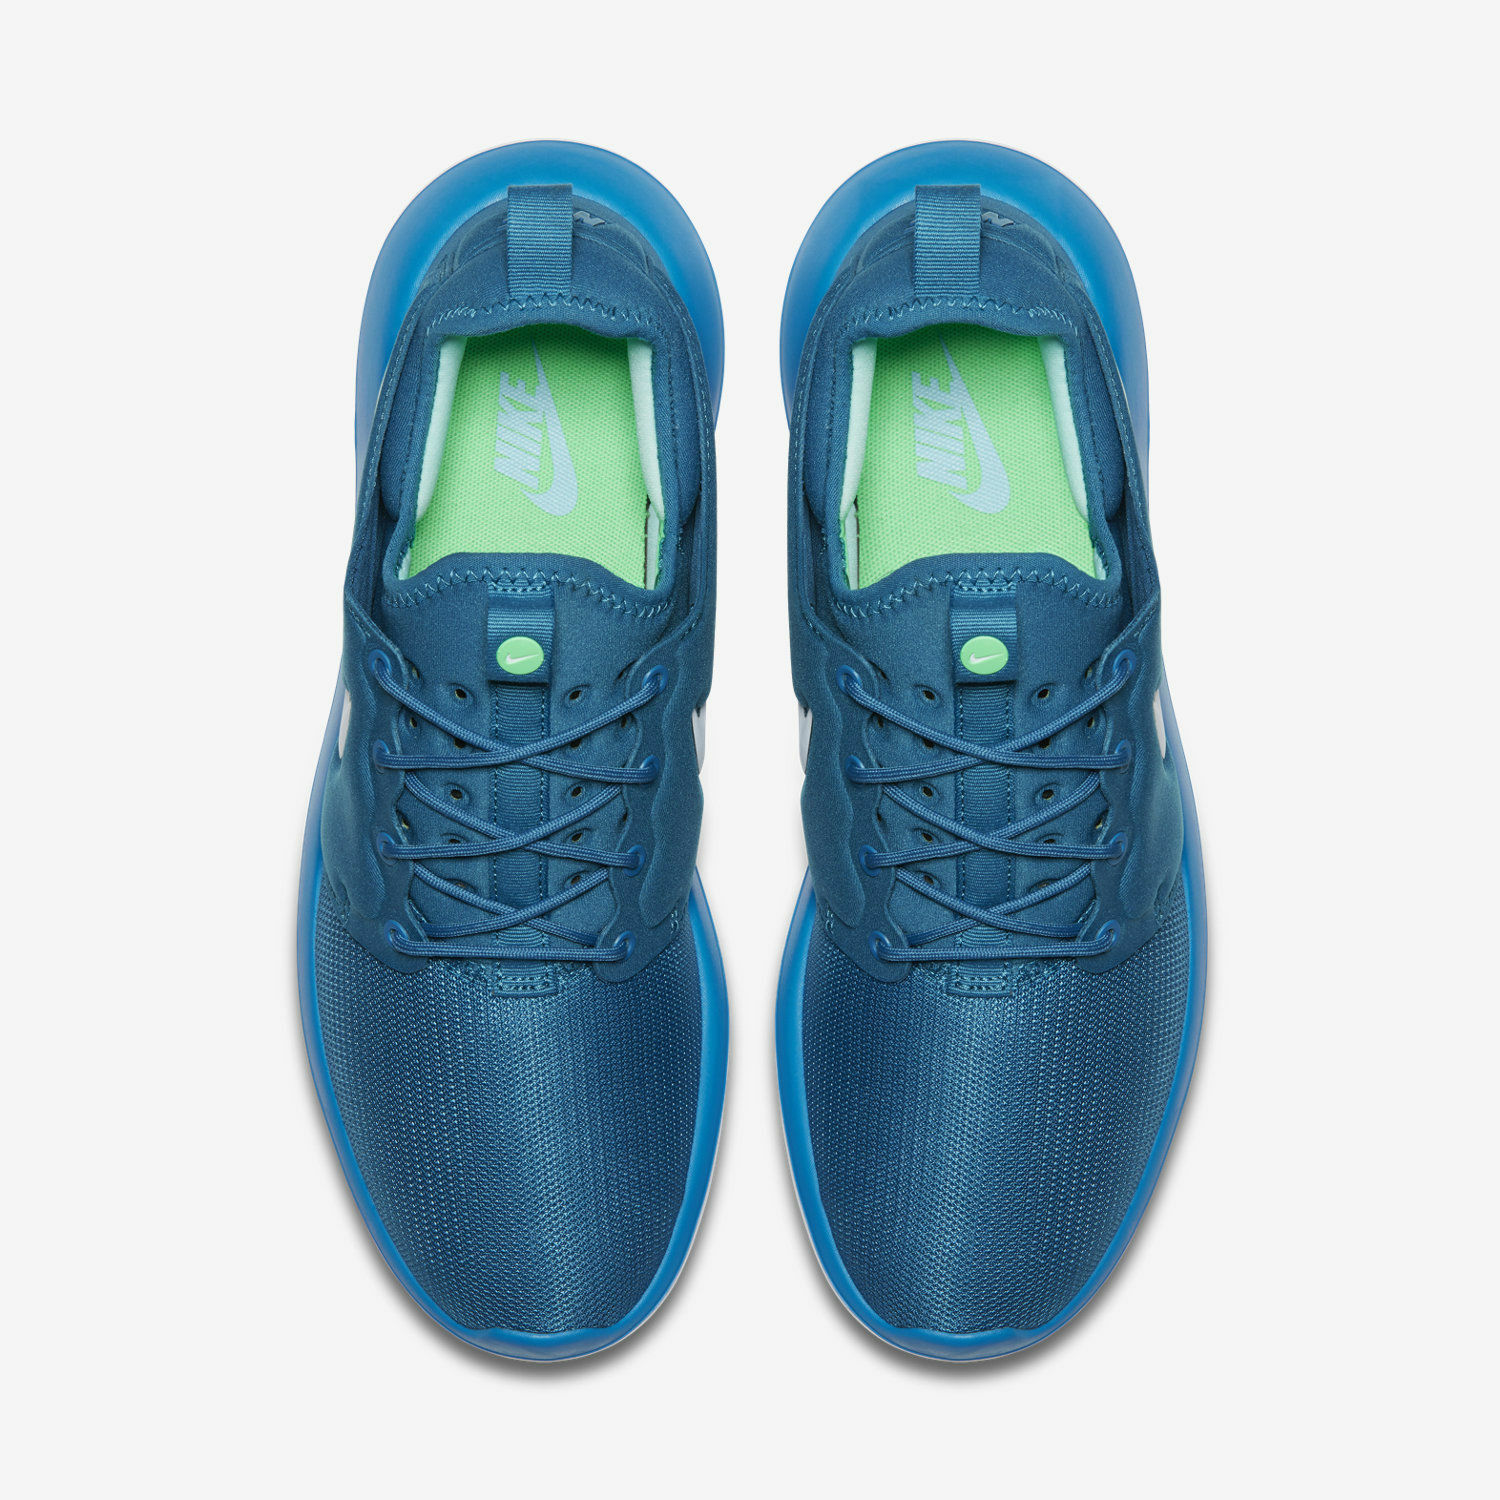 NIKE ROSHE TWO 43) Running Trainers Gym Casual -8.5 (EUR 43) TWO Industrial bleu 968907